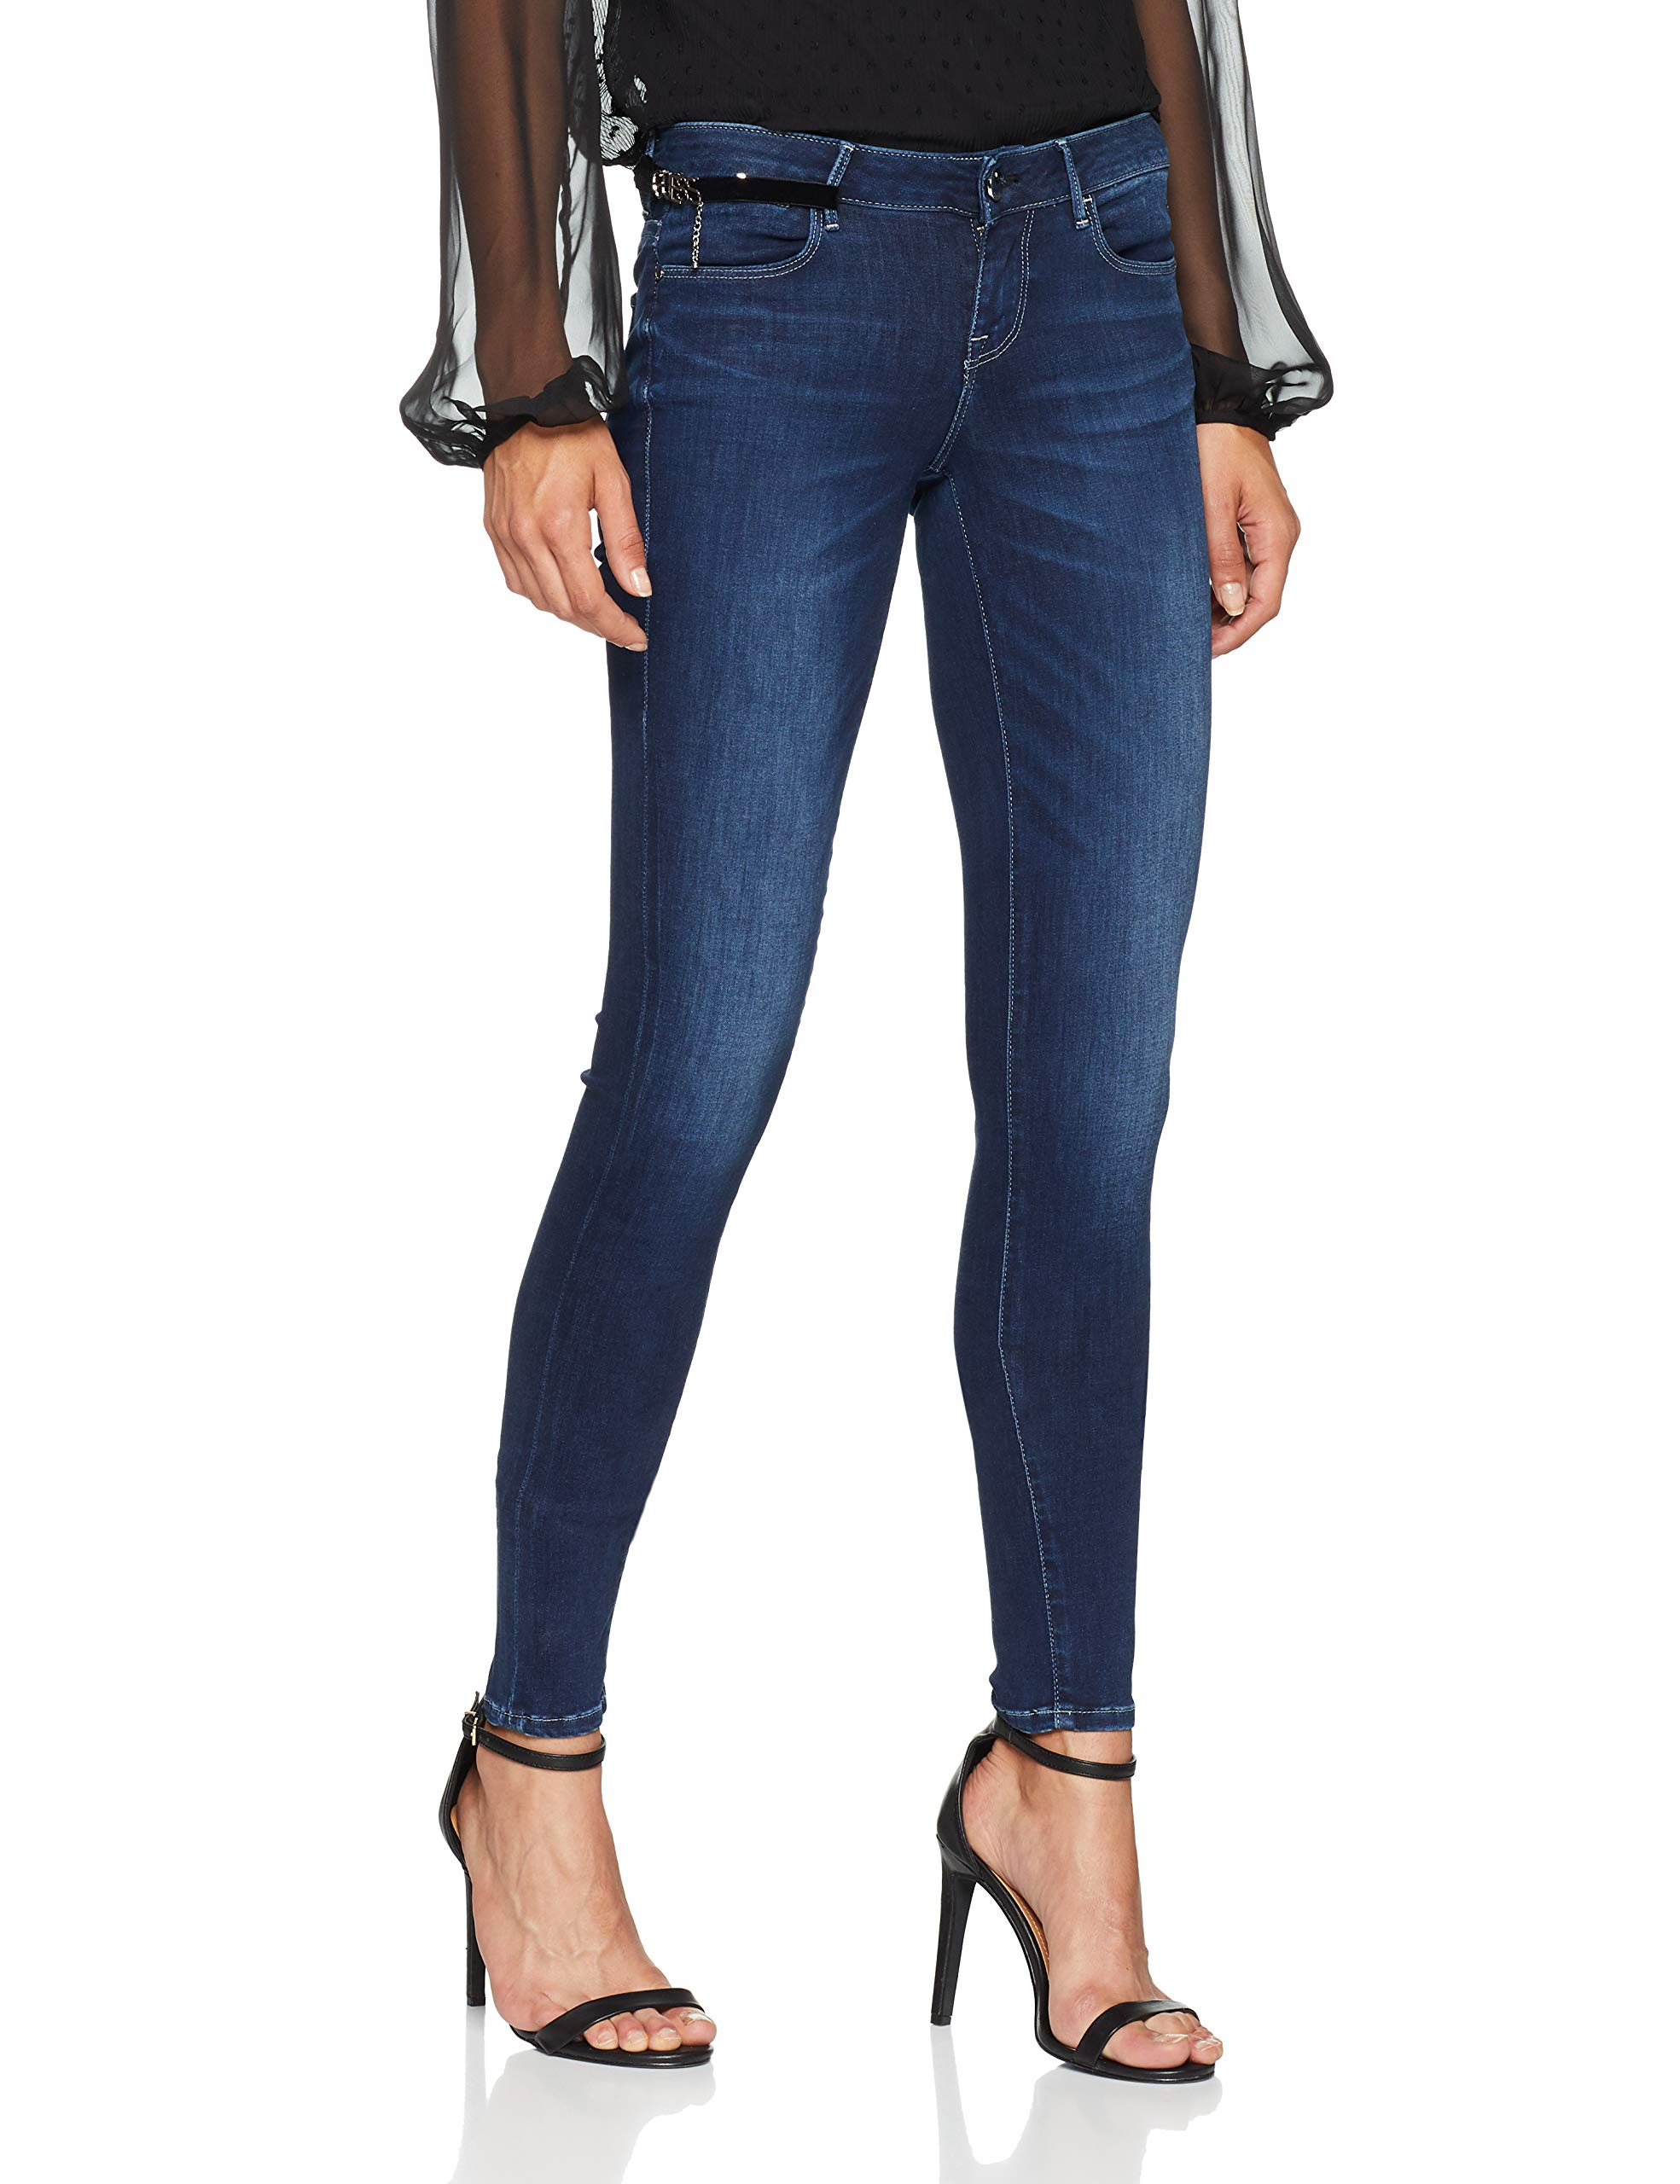 Jean SkinnyBleutrue Tubt36taille Fabricant27Femme Beauty Guess W83a27d38i1 sxhQrdCt